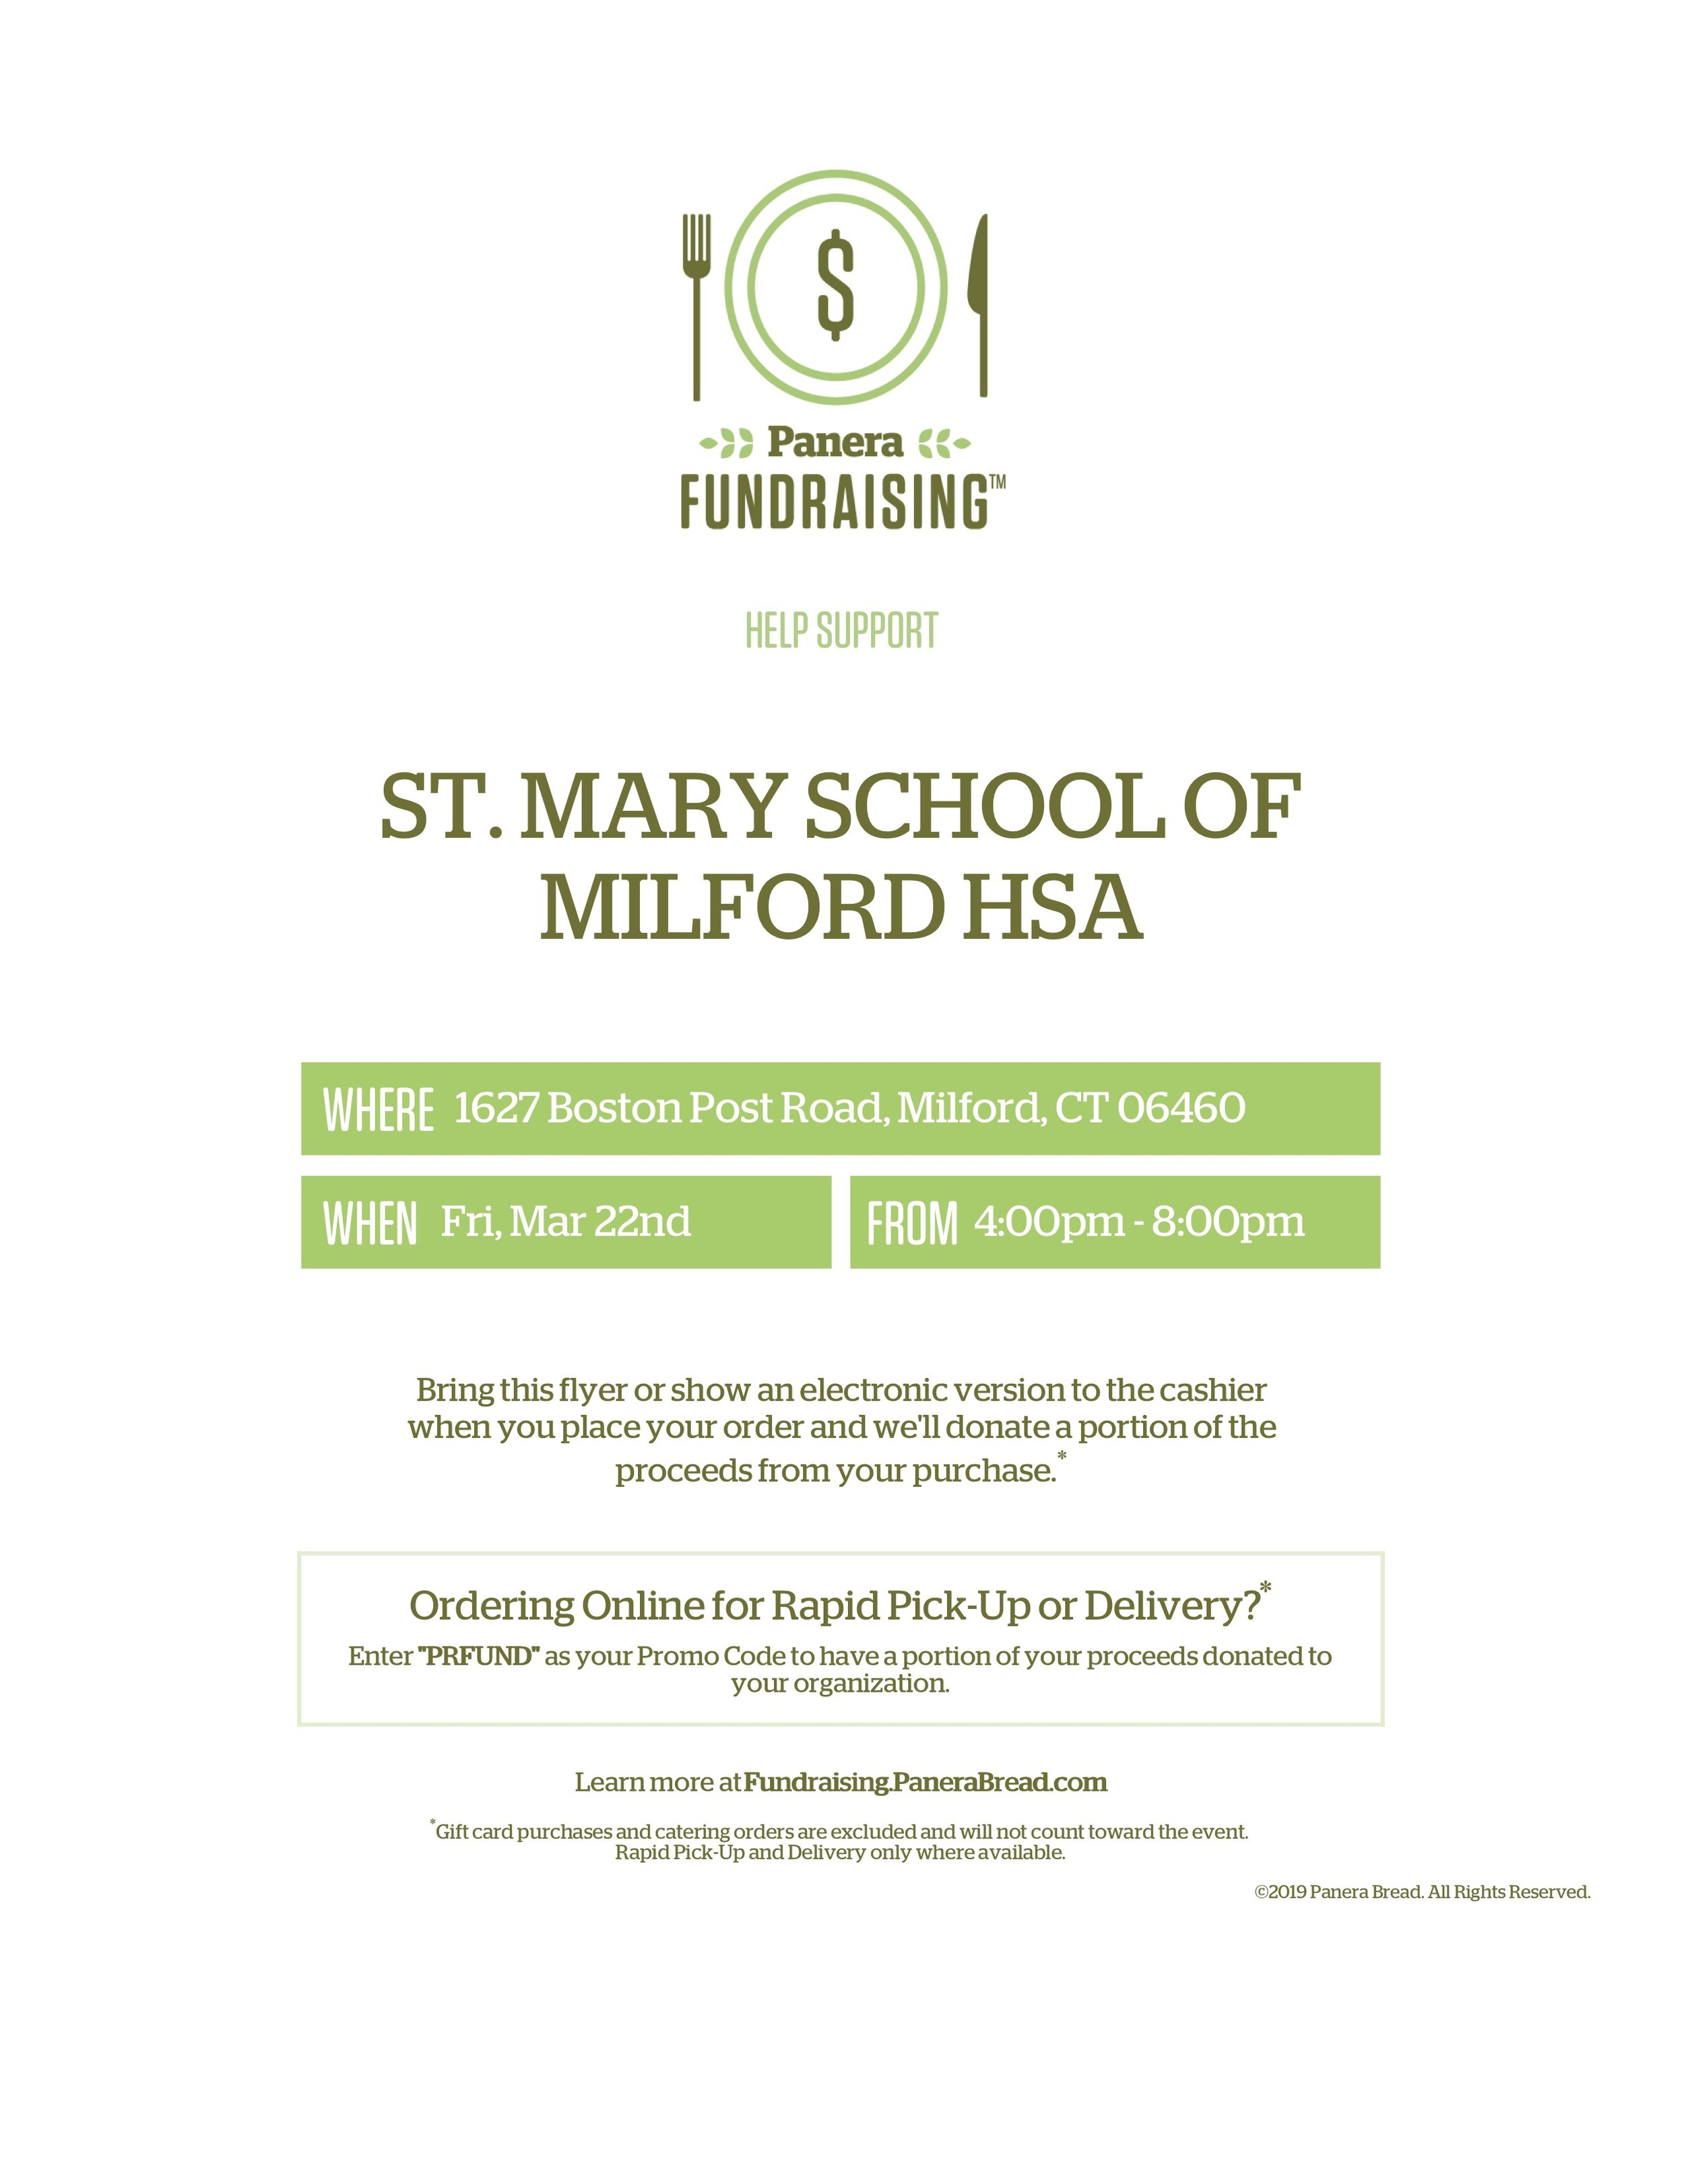 SMS Panera Fundraising Flyer 2019 copy 2.jpg